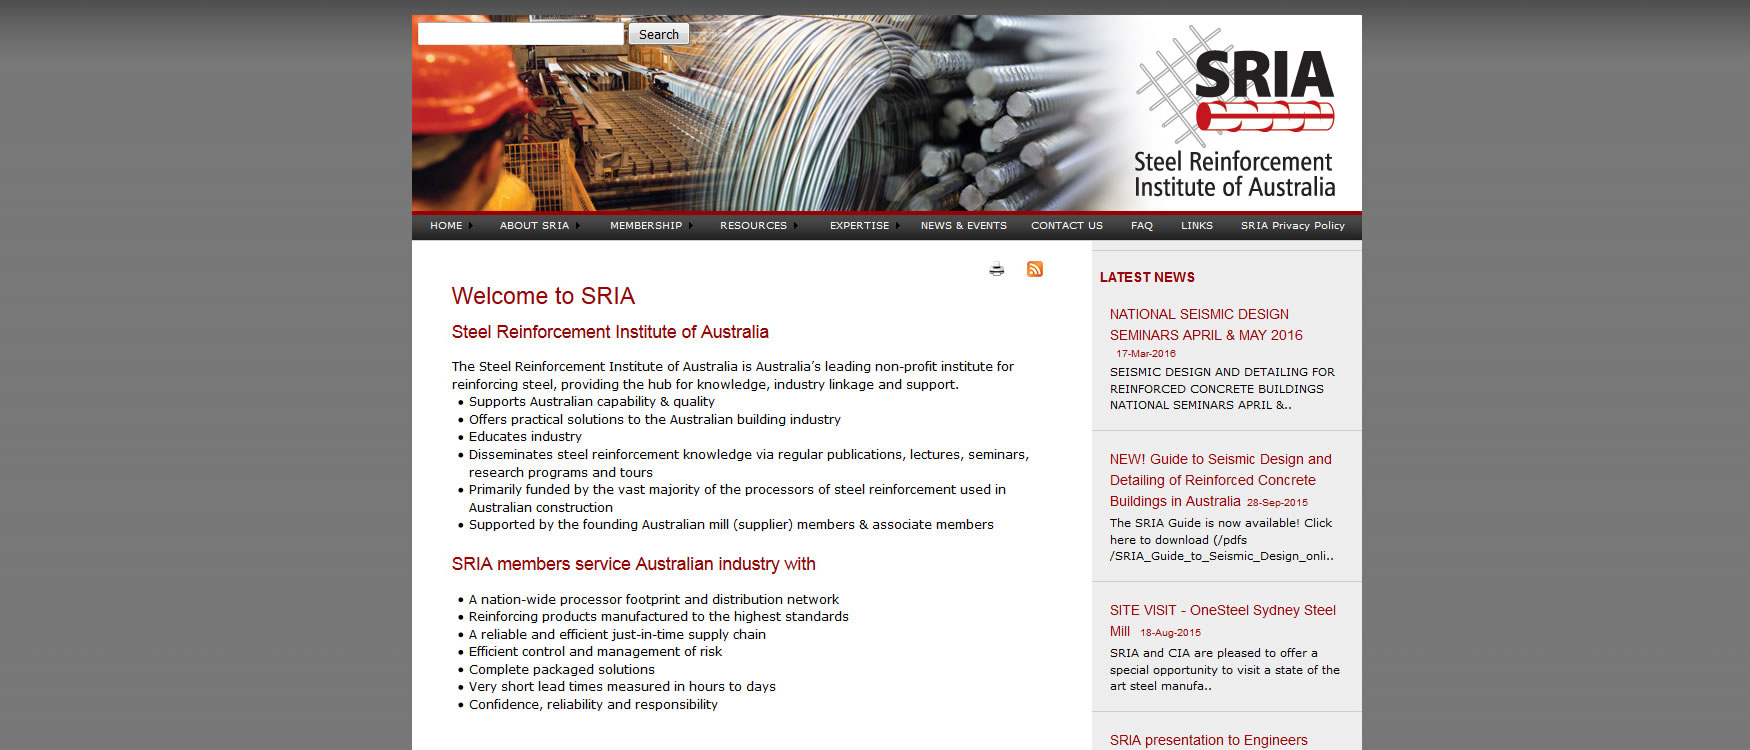 Steel Reinforcement Institute of Australia